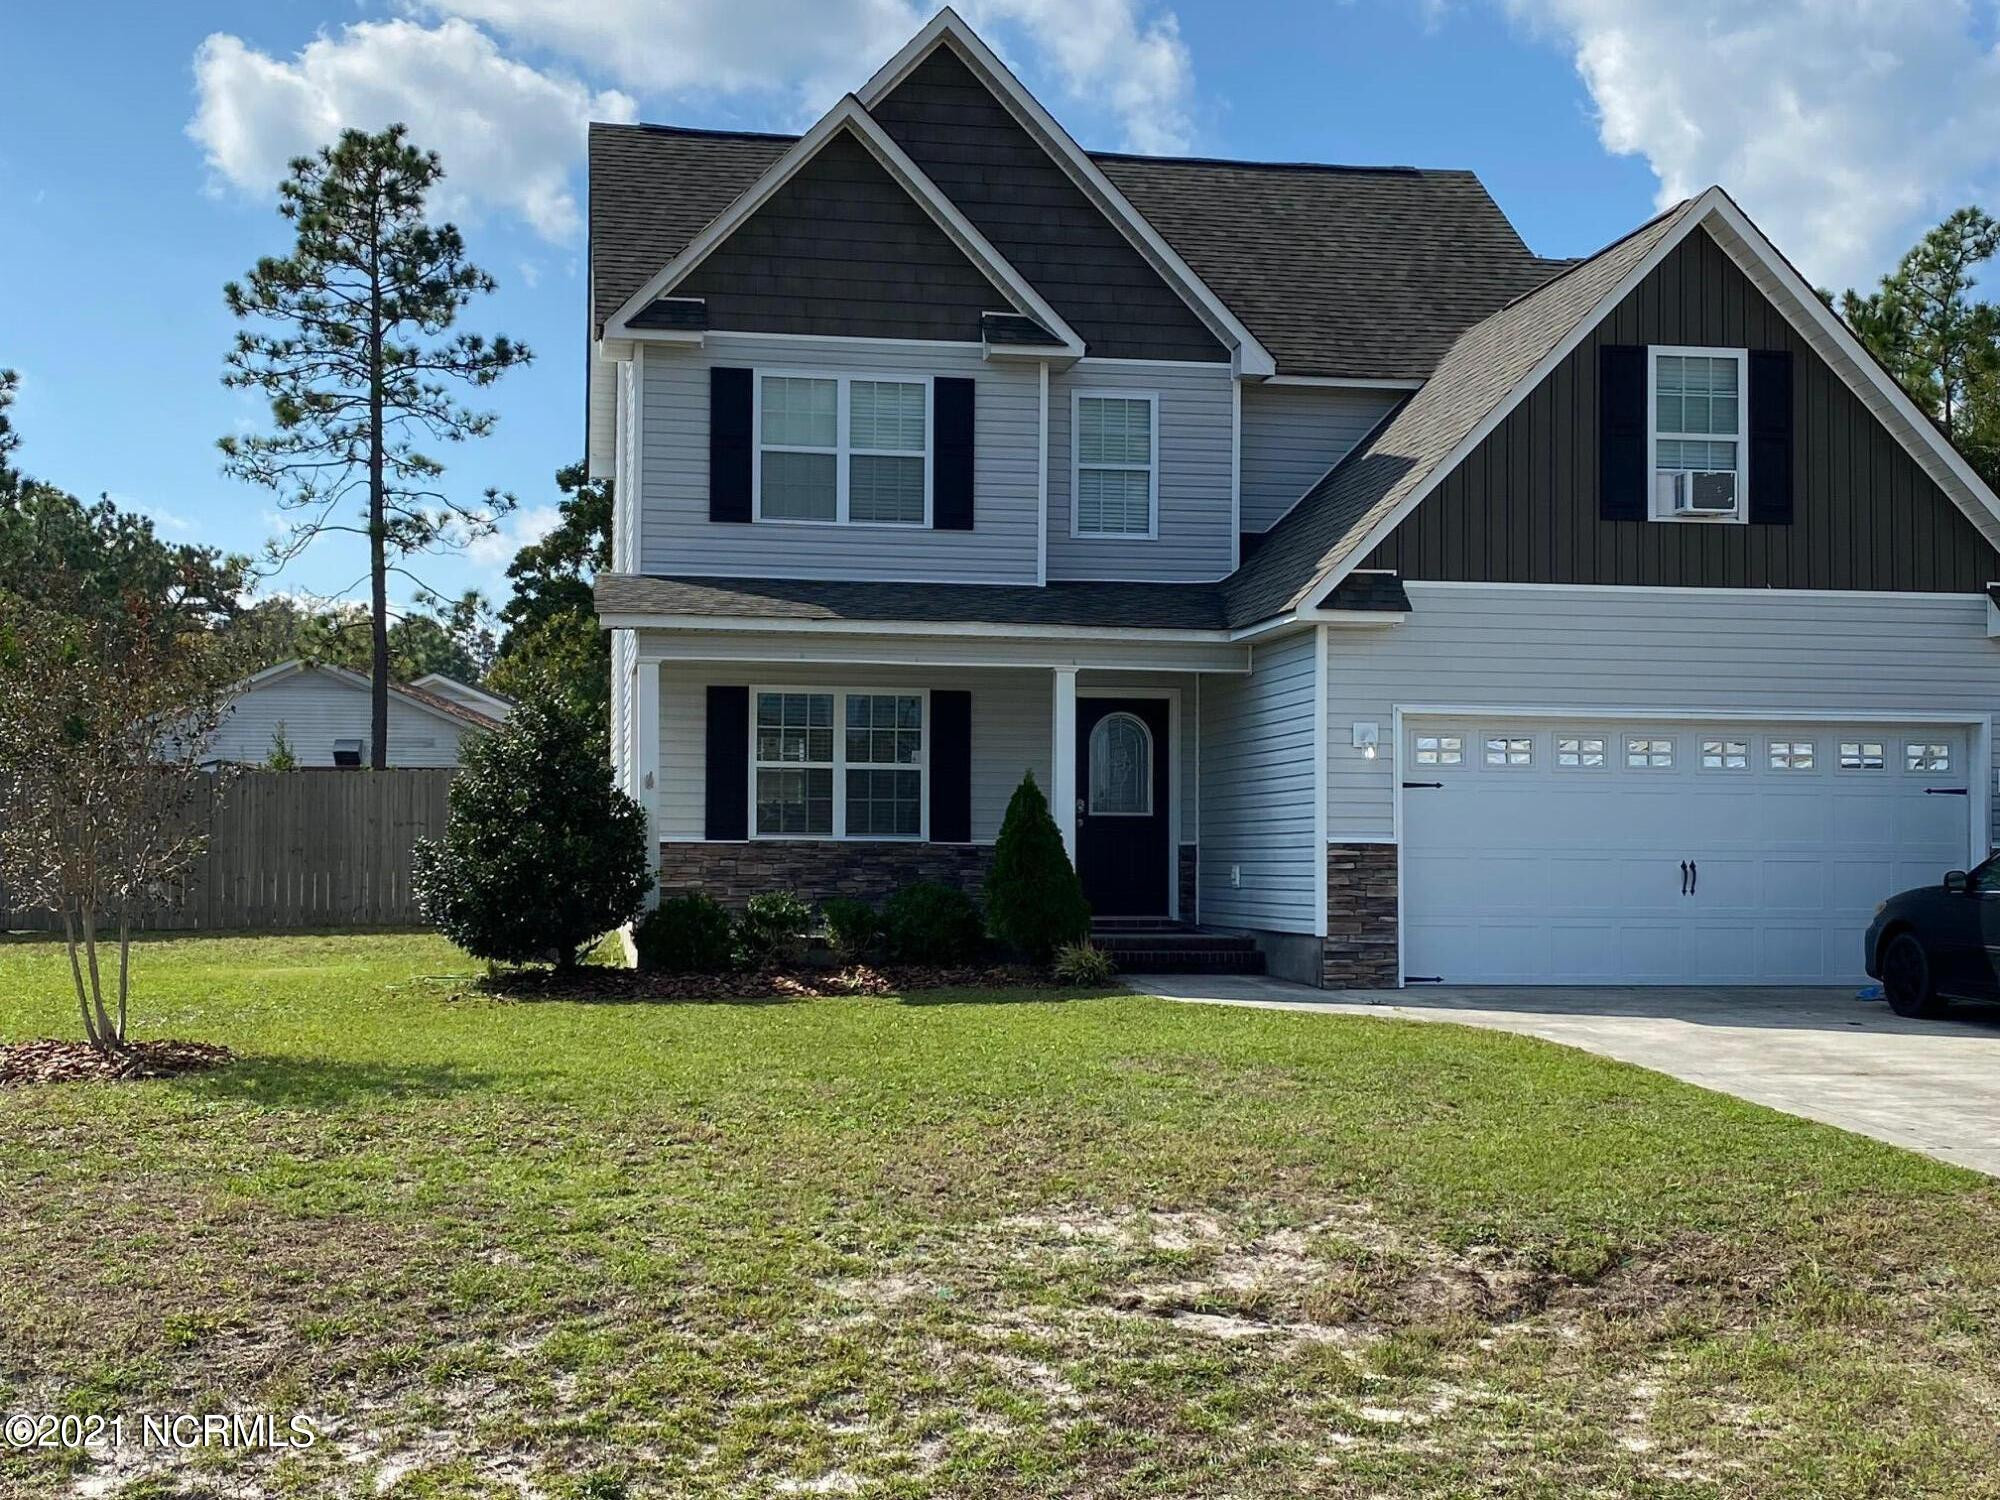 Welcome home to this spacious 3 bedroom, 2 and 1/2 bath home. As you enter the foyer, you are greeted by newer laminate flooring which extends through most of the first floor. To the right of the foyer is the door out to the two car garage. To the right, the formal dining room, a hallway with half-bath and pantry. At the end of the hallway is the open, spacious kitchen. The kitchen has dark cabinetry, an island, stainless steel appliances, and opens to the family room with gas fireplace. Off the family room is the door to the back patio, and large, fenced backyard. To the right of the family room are stairs leading to the second floor. Upstairs you will find the laundry room, two guest bedrooms and guest bath. Also, the owners suite with separate tub and shower, water closet, walk in closet, and bonus room. Schedule your tour today before this conveniently located gem gets away.